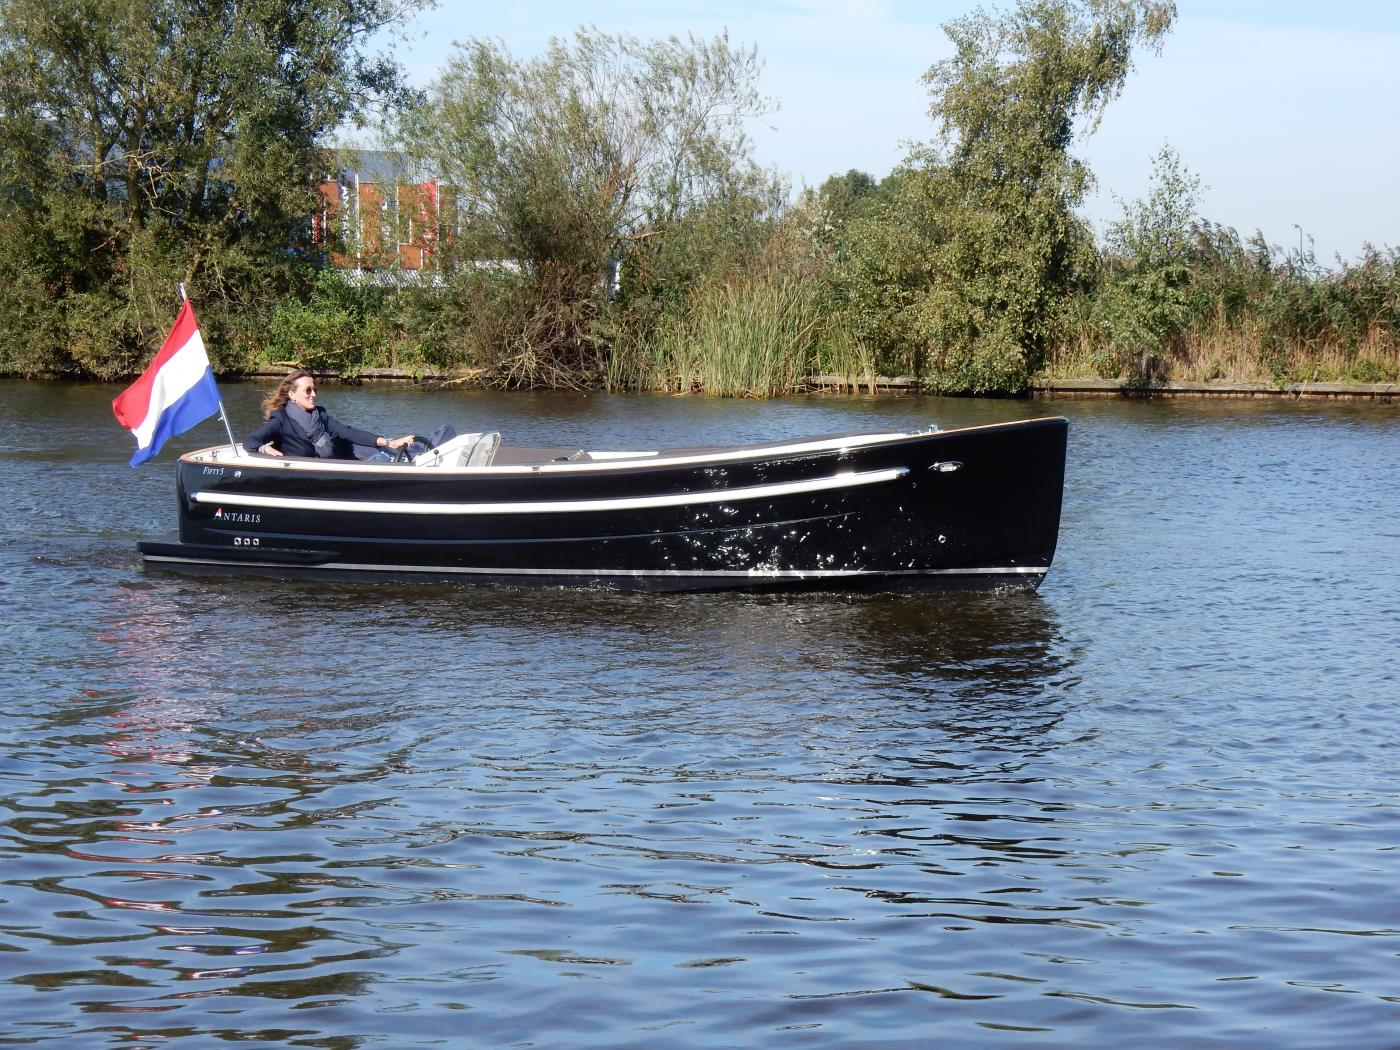 Te koop Antaris  Fifty5 Sloepen | Bomert Watersport